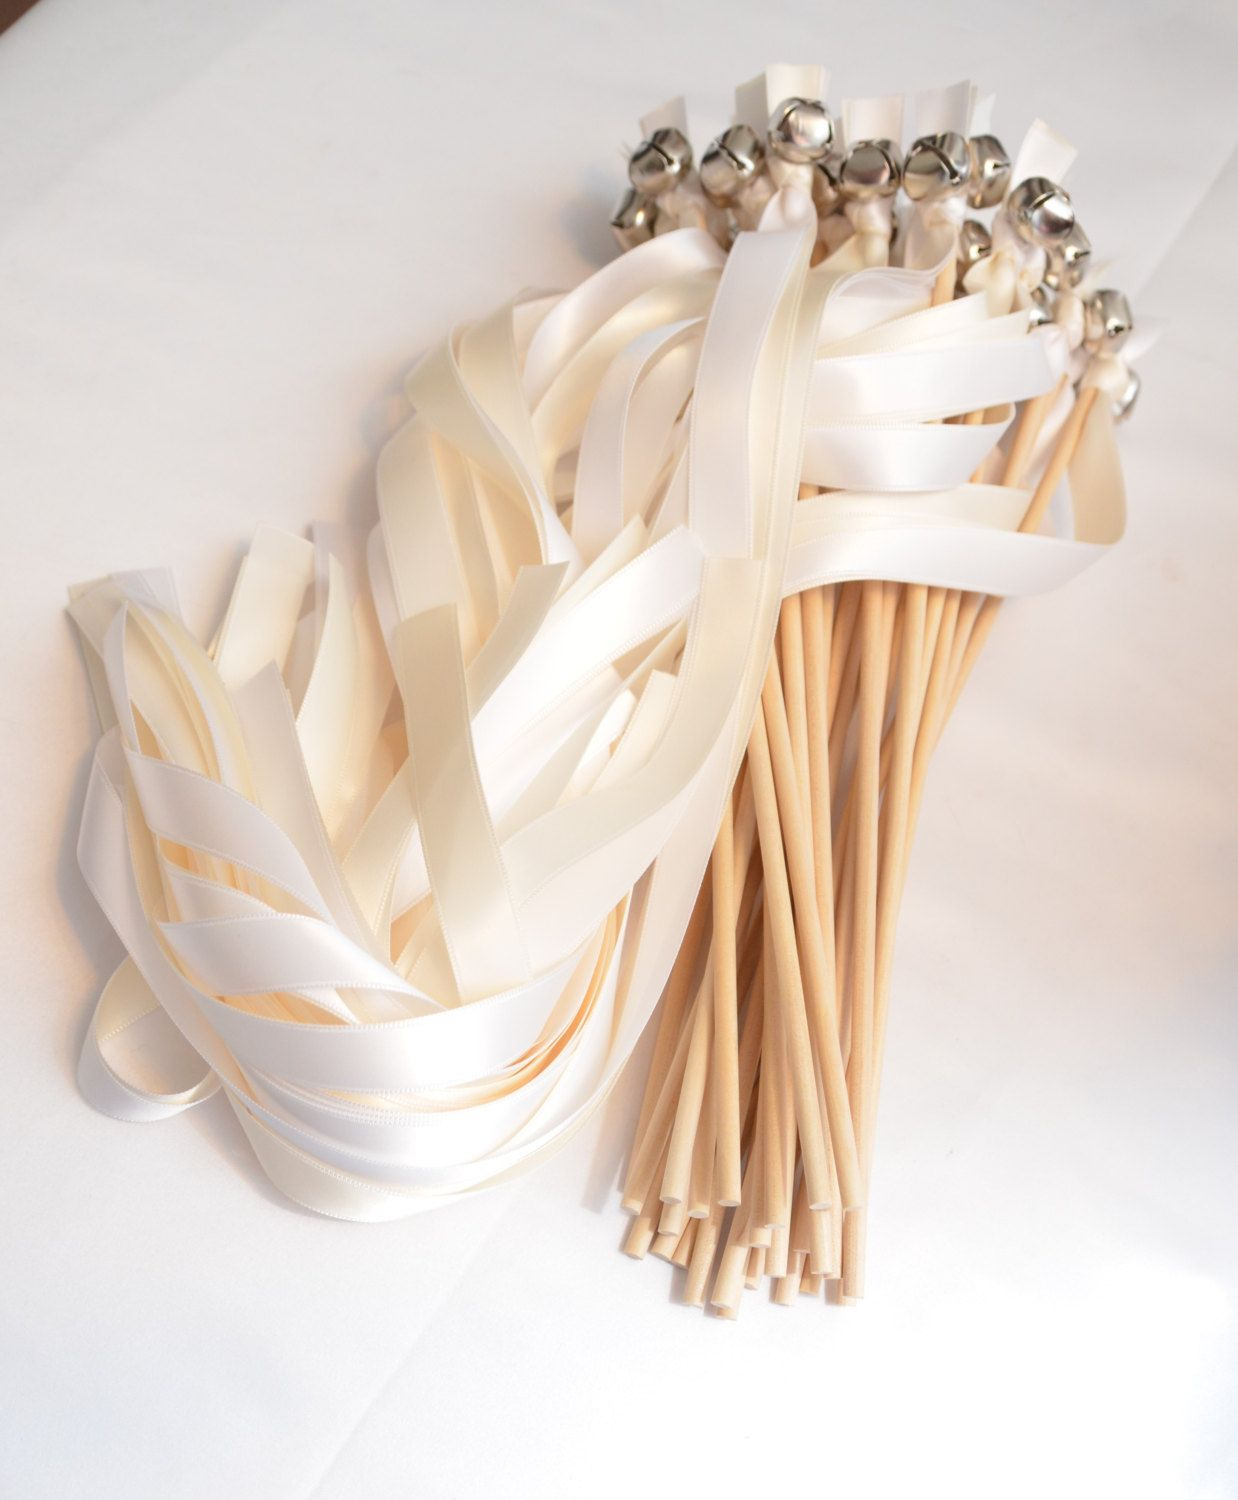 weddings 100 ribbon bell wands divinity braid party kissing bells weddinggn favors